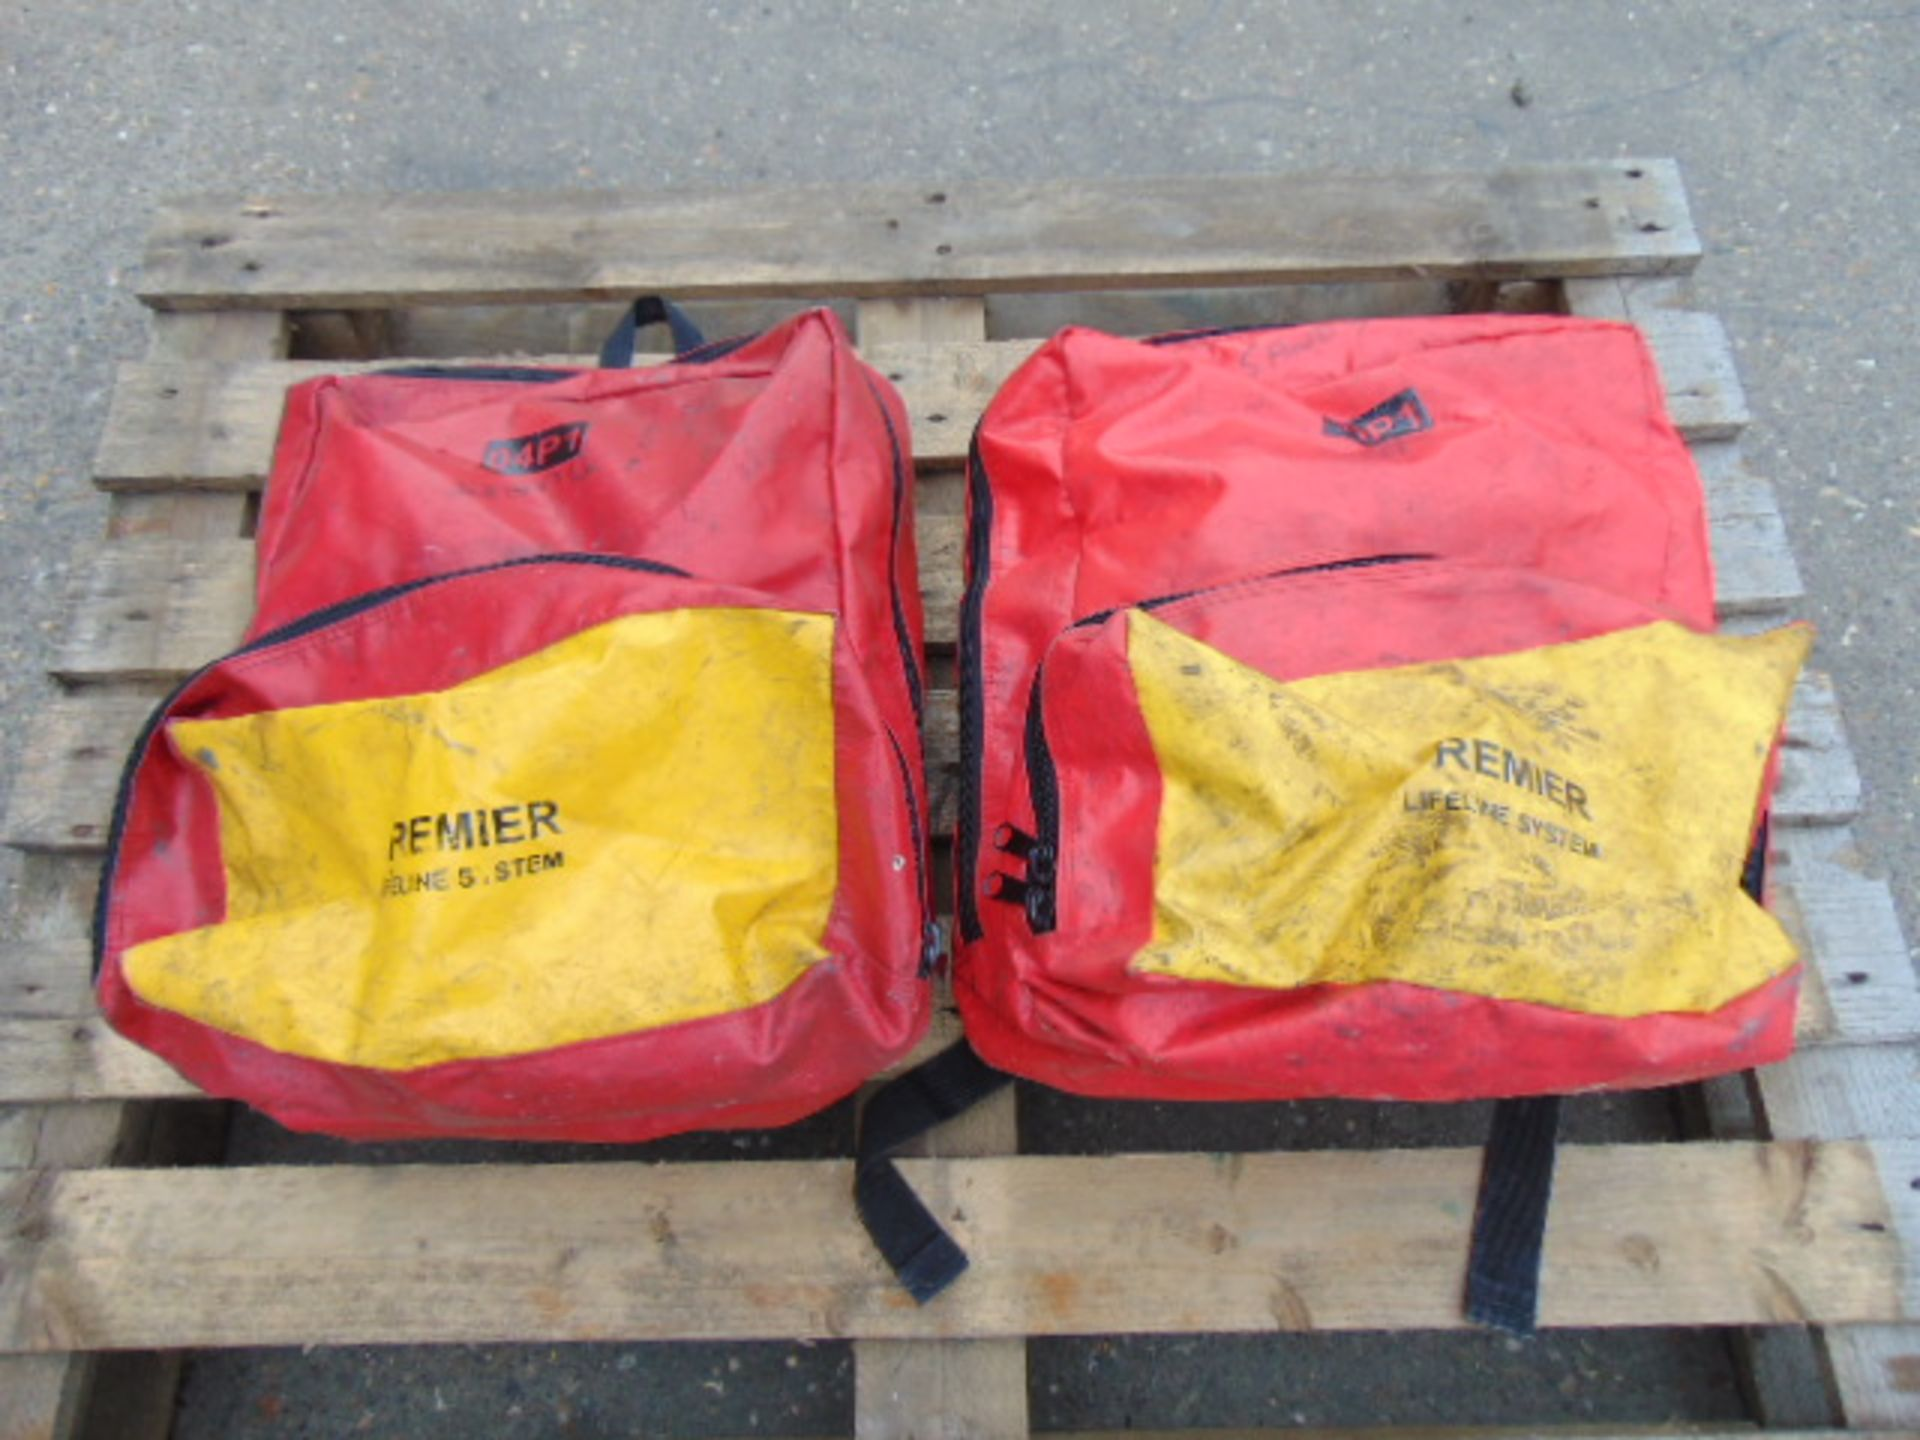 QTY 2 x Premier Lifeline Hose Inflation Systems - Image 4 of 4